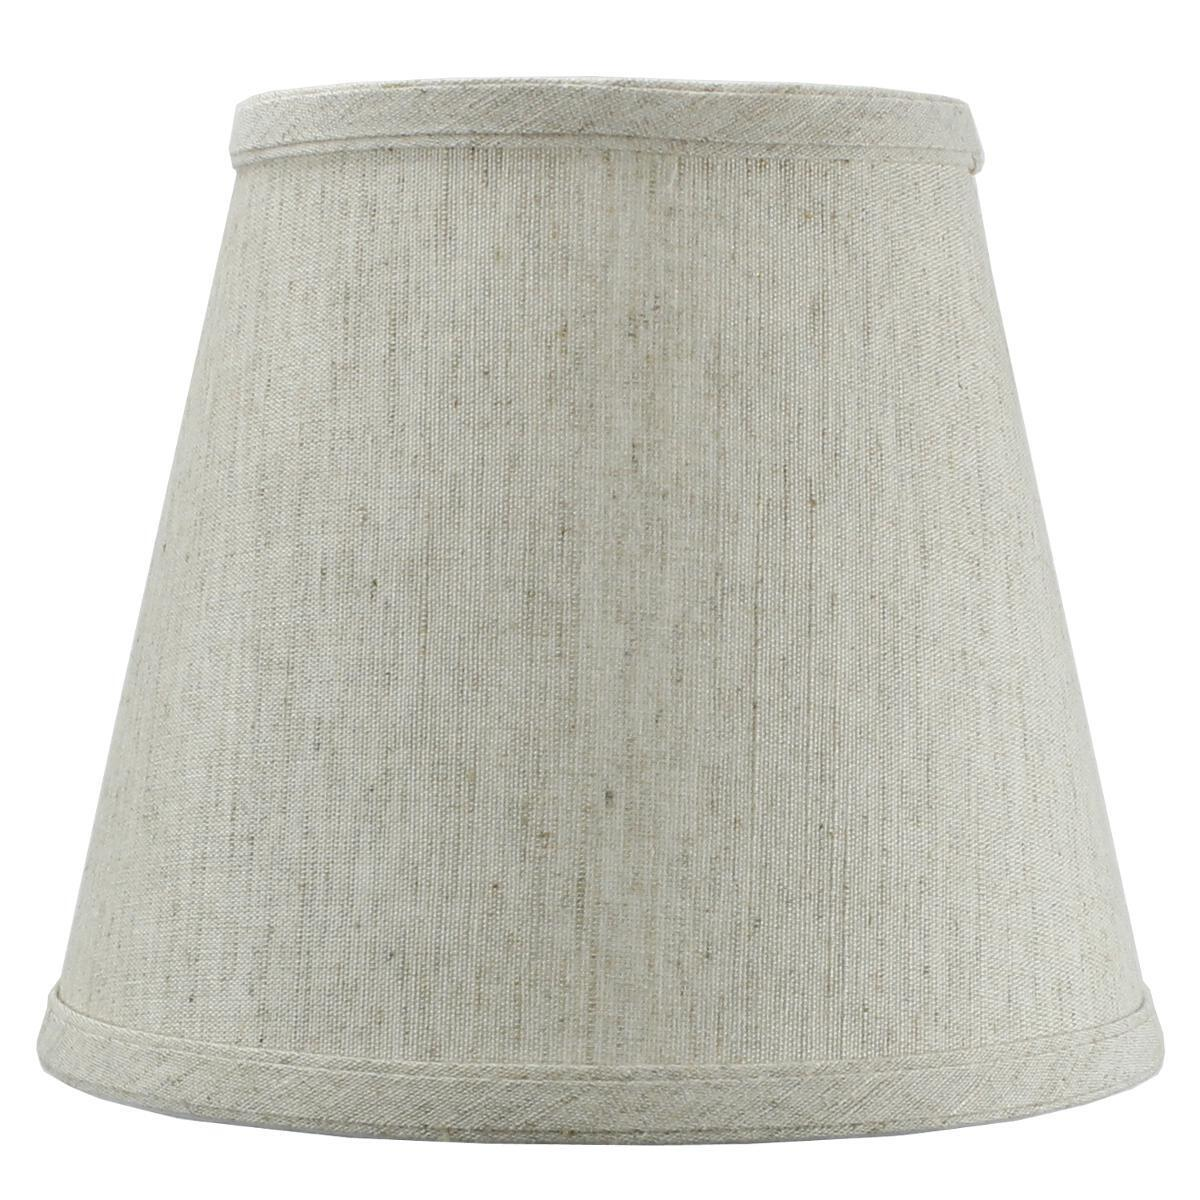 5x8x7 Textured Oatmeal Hard Back Lampshade Edison Clip On